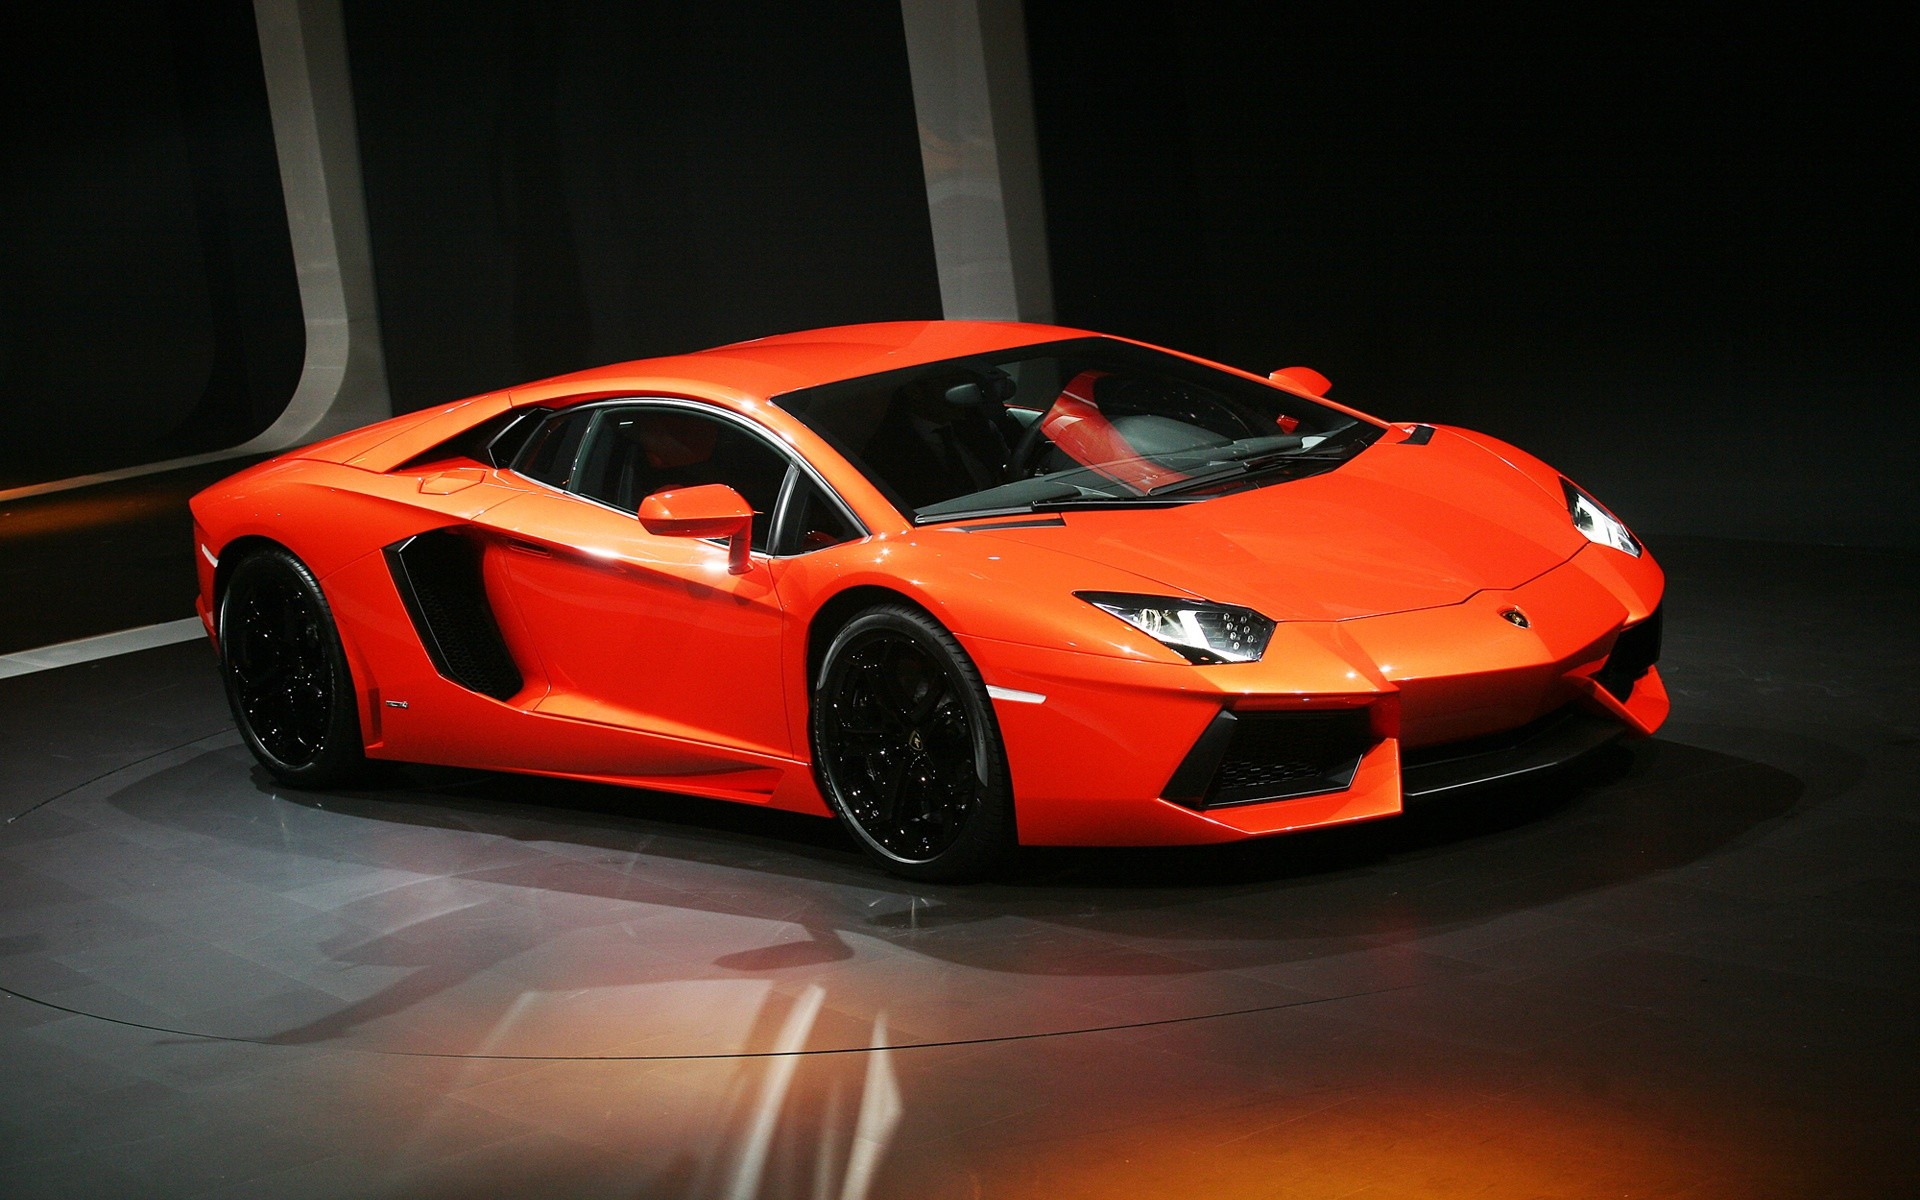 1920x1200 Lamborghini Aventador Sports car HQ wallpaper